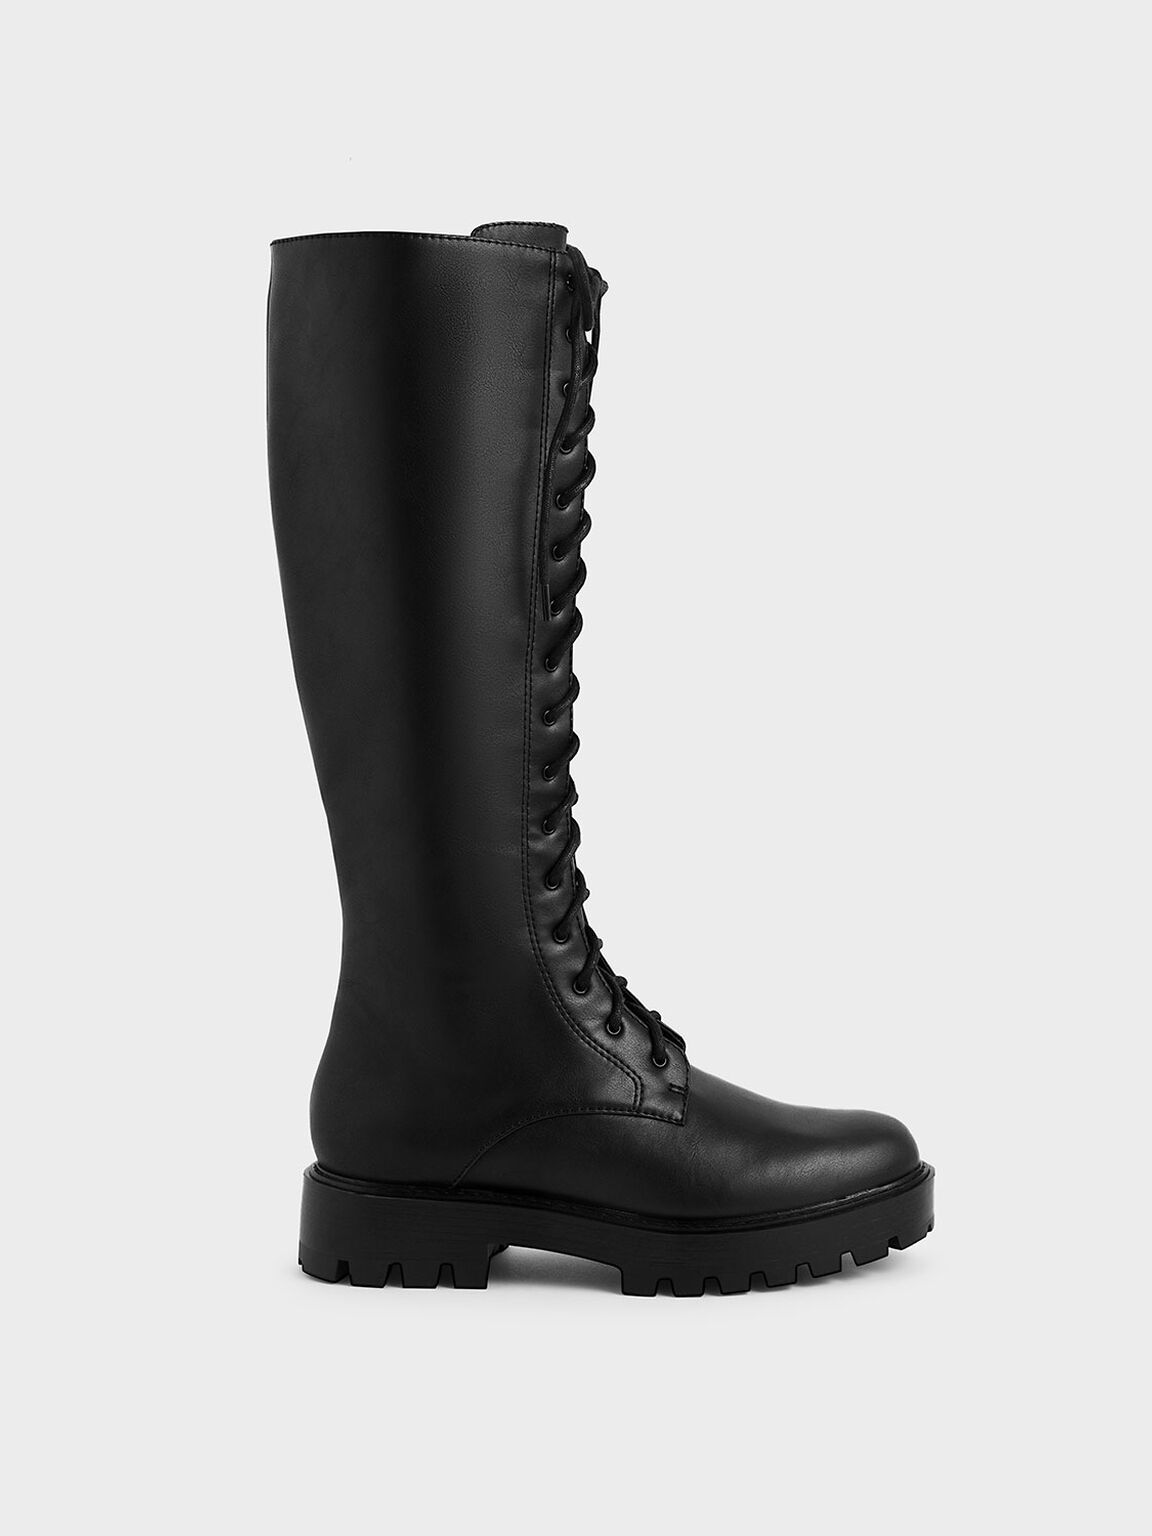 Knee High Lace-Up Boots, Black, hi-res